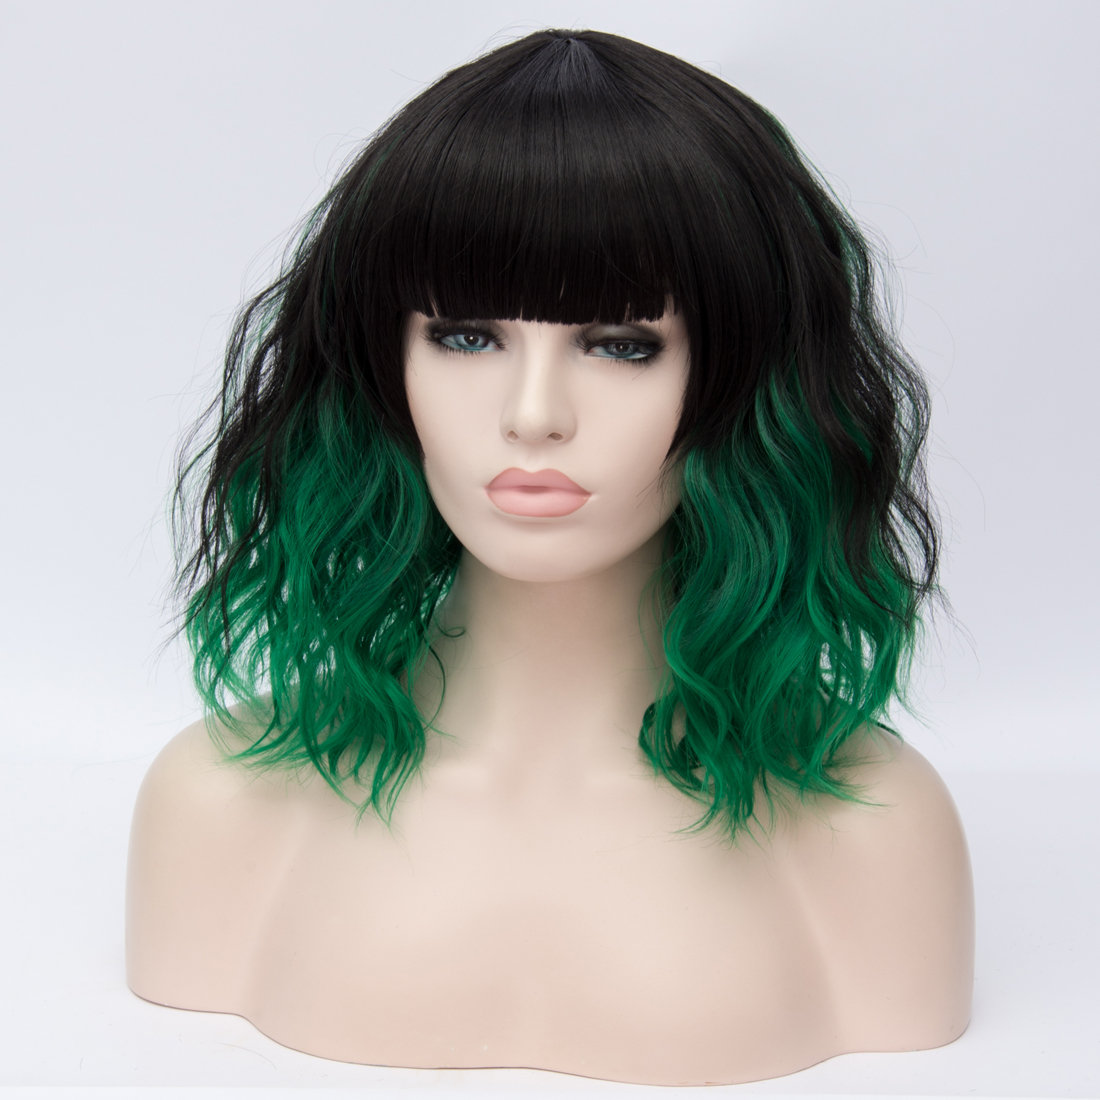 Ha35ed5965d3f4c719c62cf0ac39fe9c3P - Similler Short Synthetic Wig for Women Cosplay Curly Hair Heat Resistance Ombre Color Blue Purple Pink Green Orange Two Tones